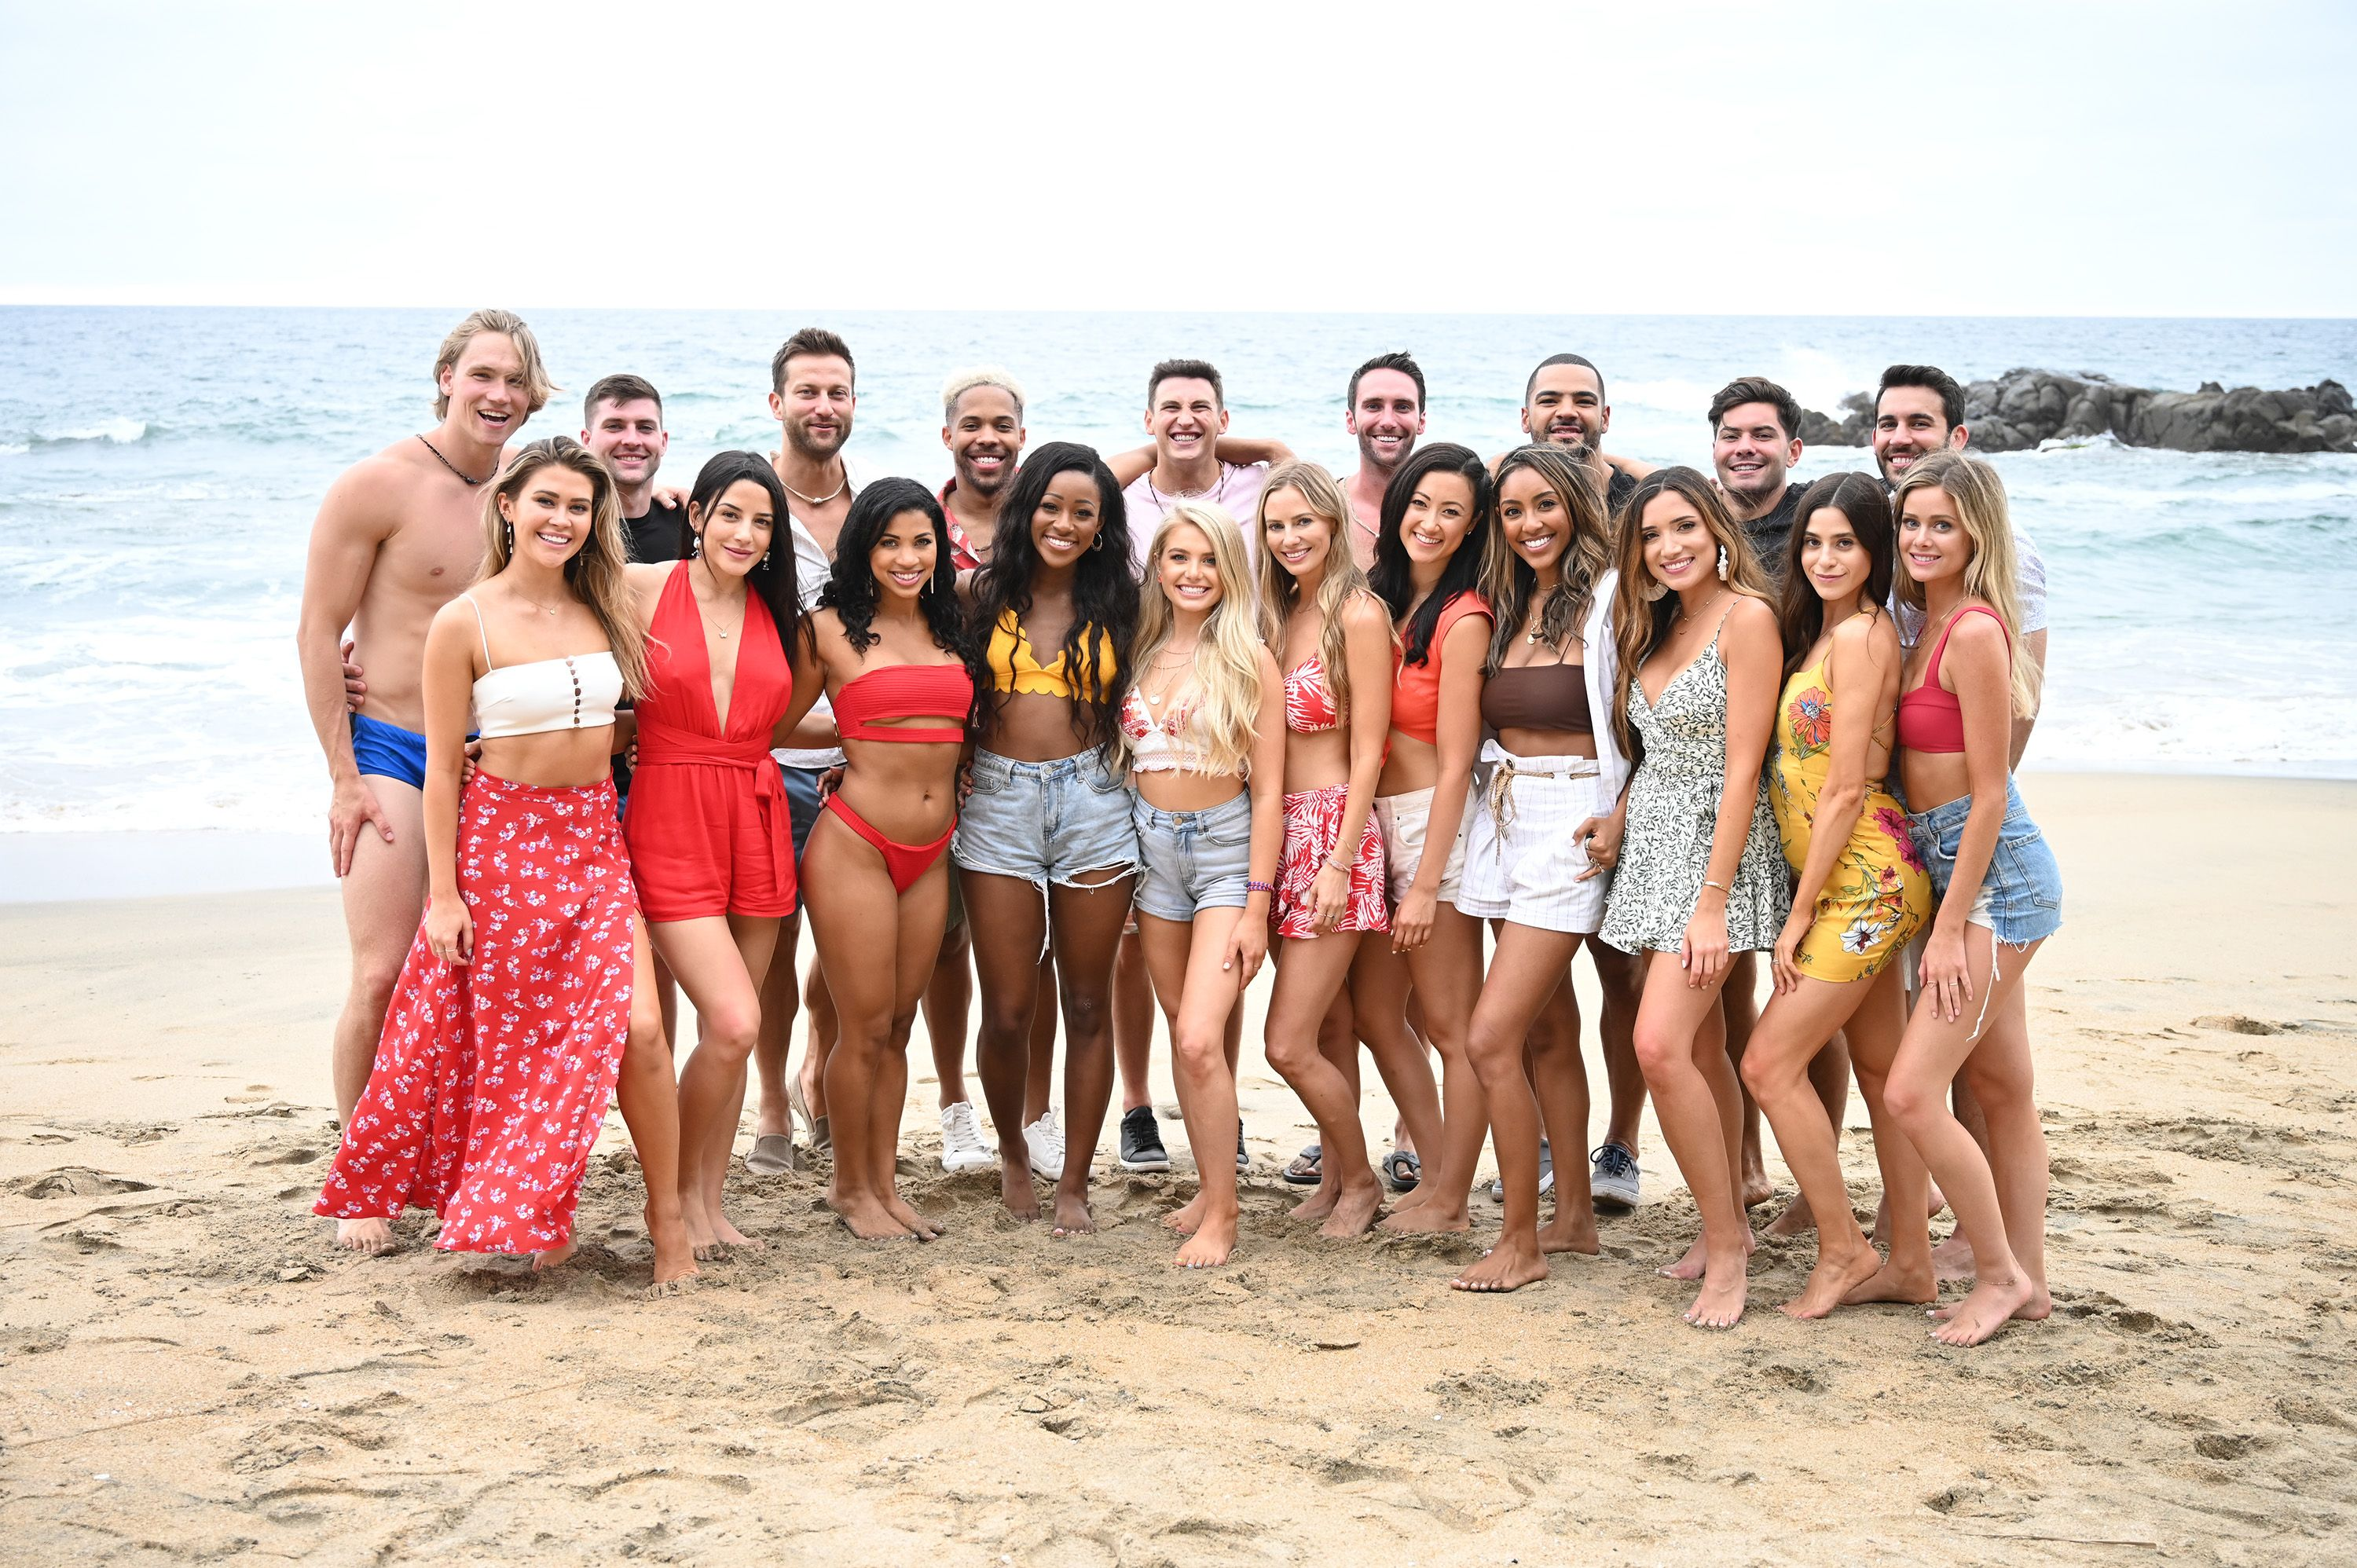 All The Latest 'Bachelor in Paradise' Spoilers, According To Reality Steve